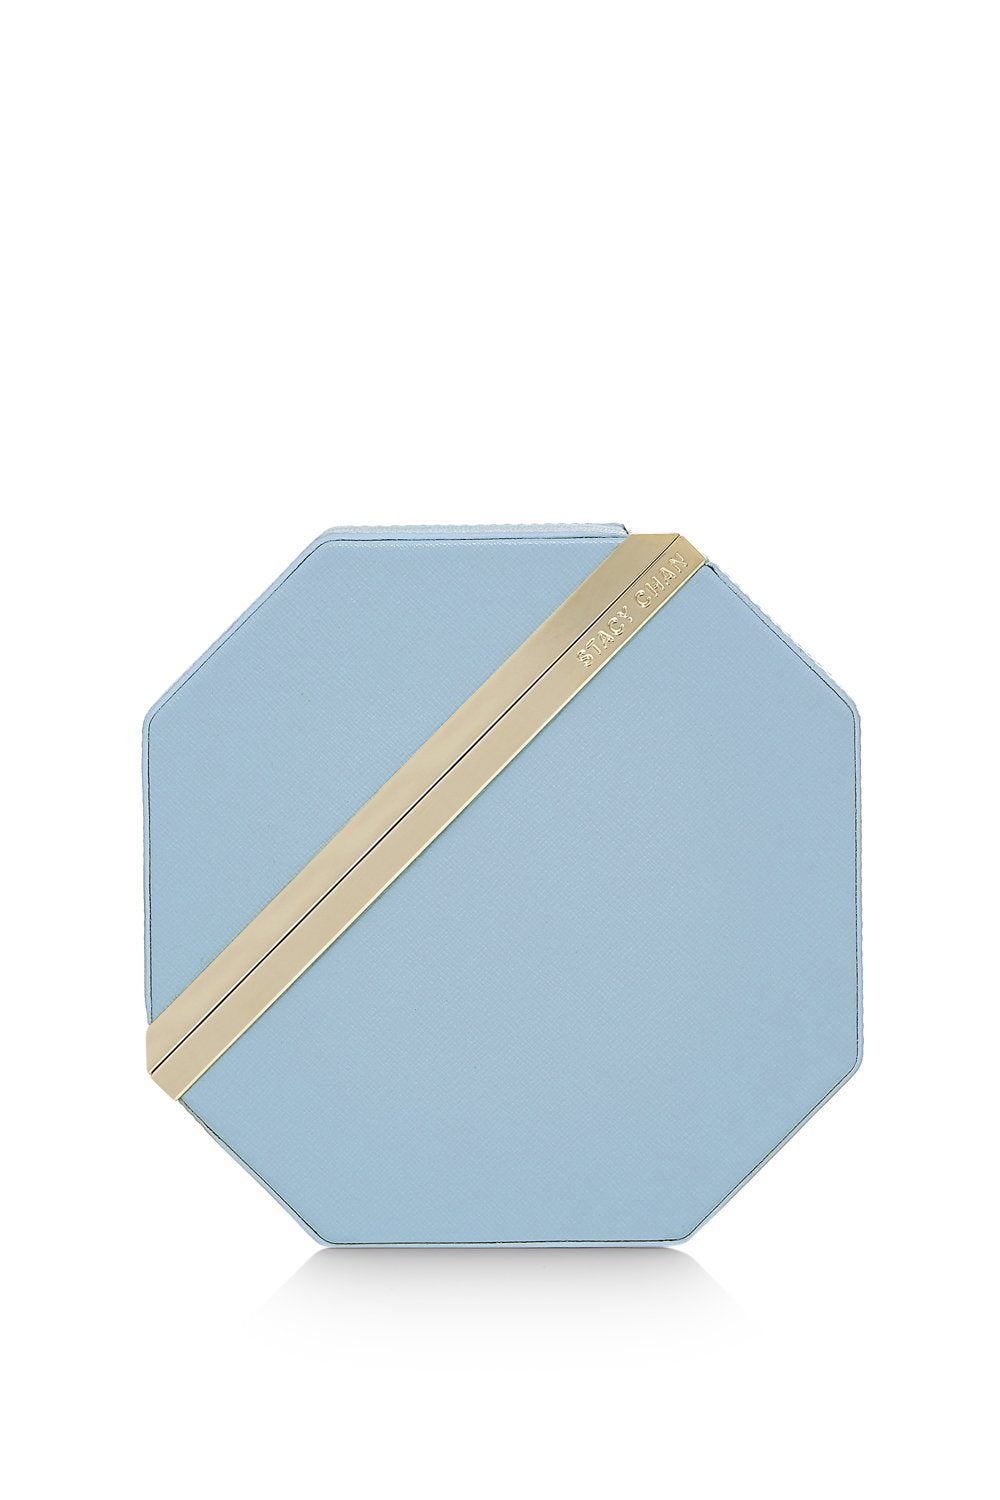 New Imogen Clutch Bag in Powder Blue Saffiano Leather